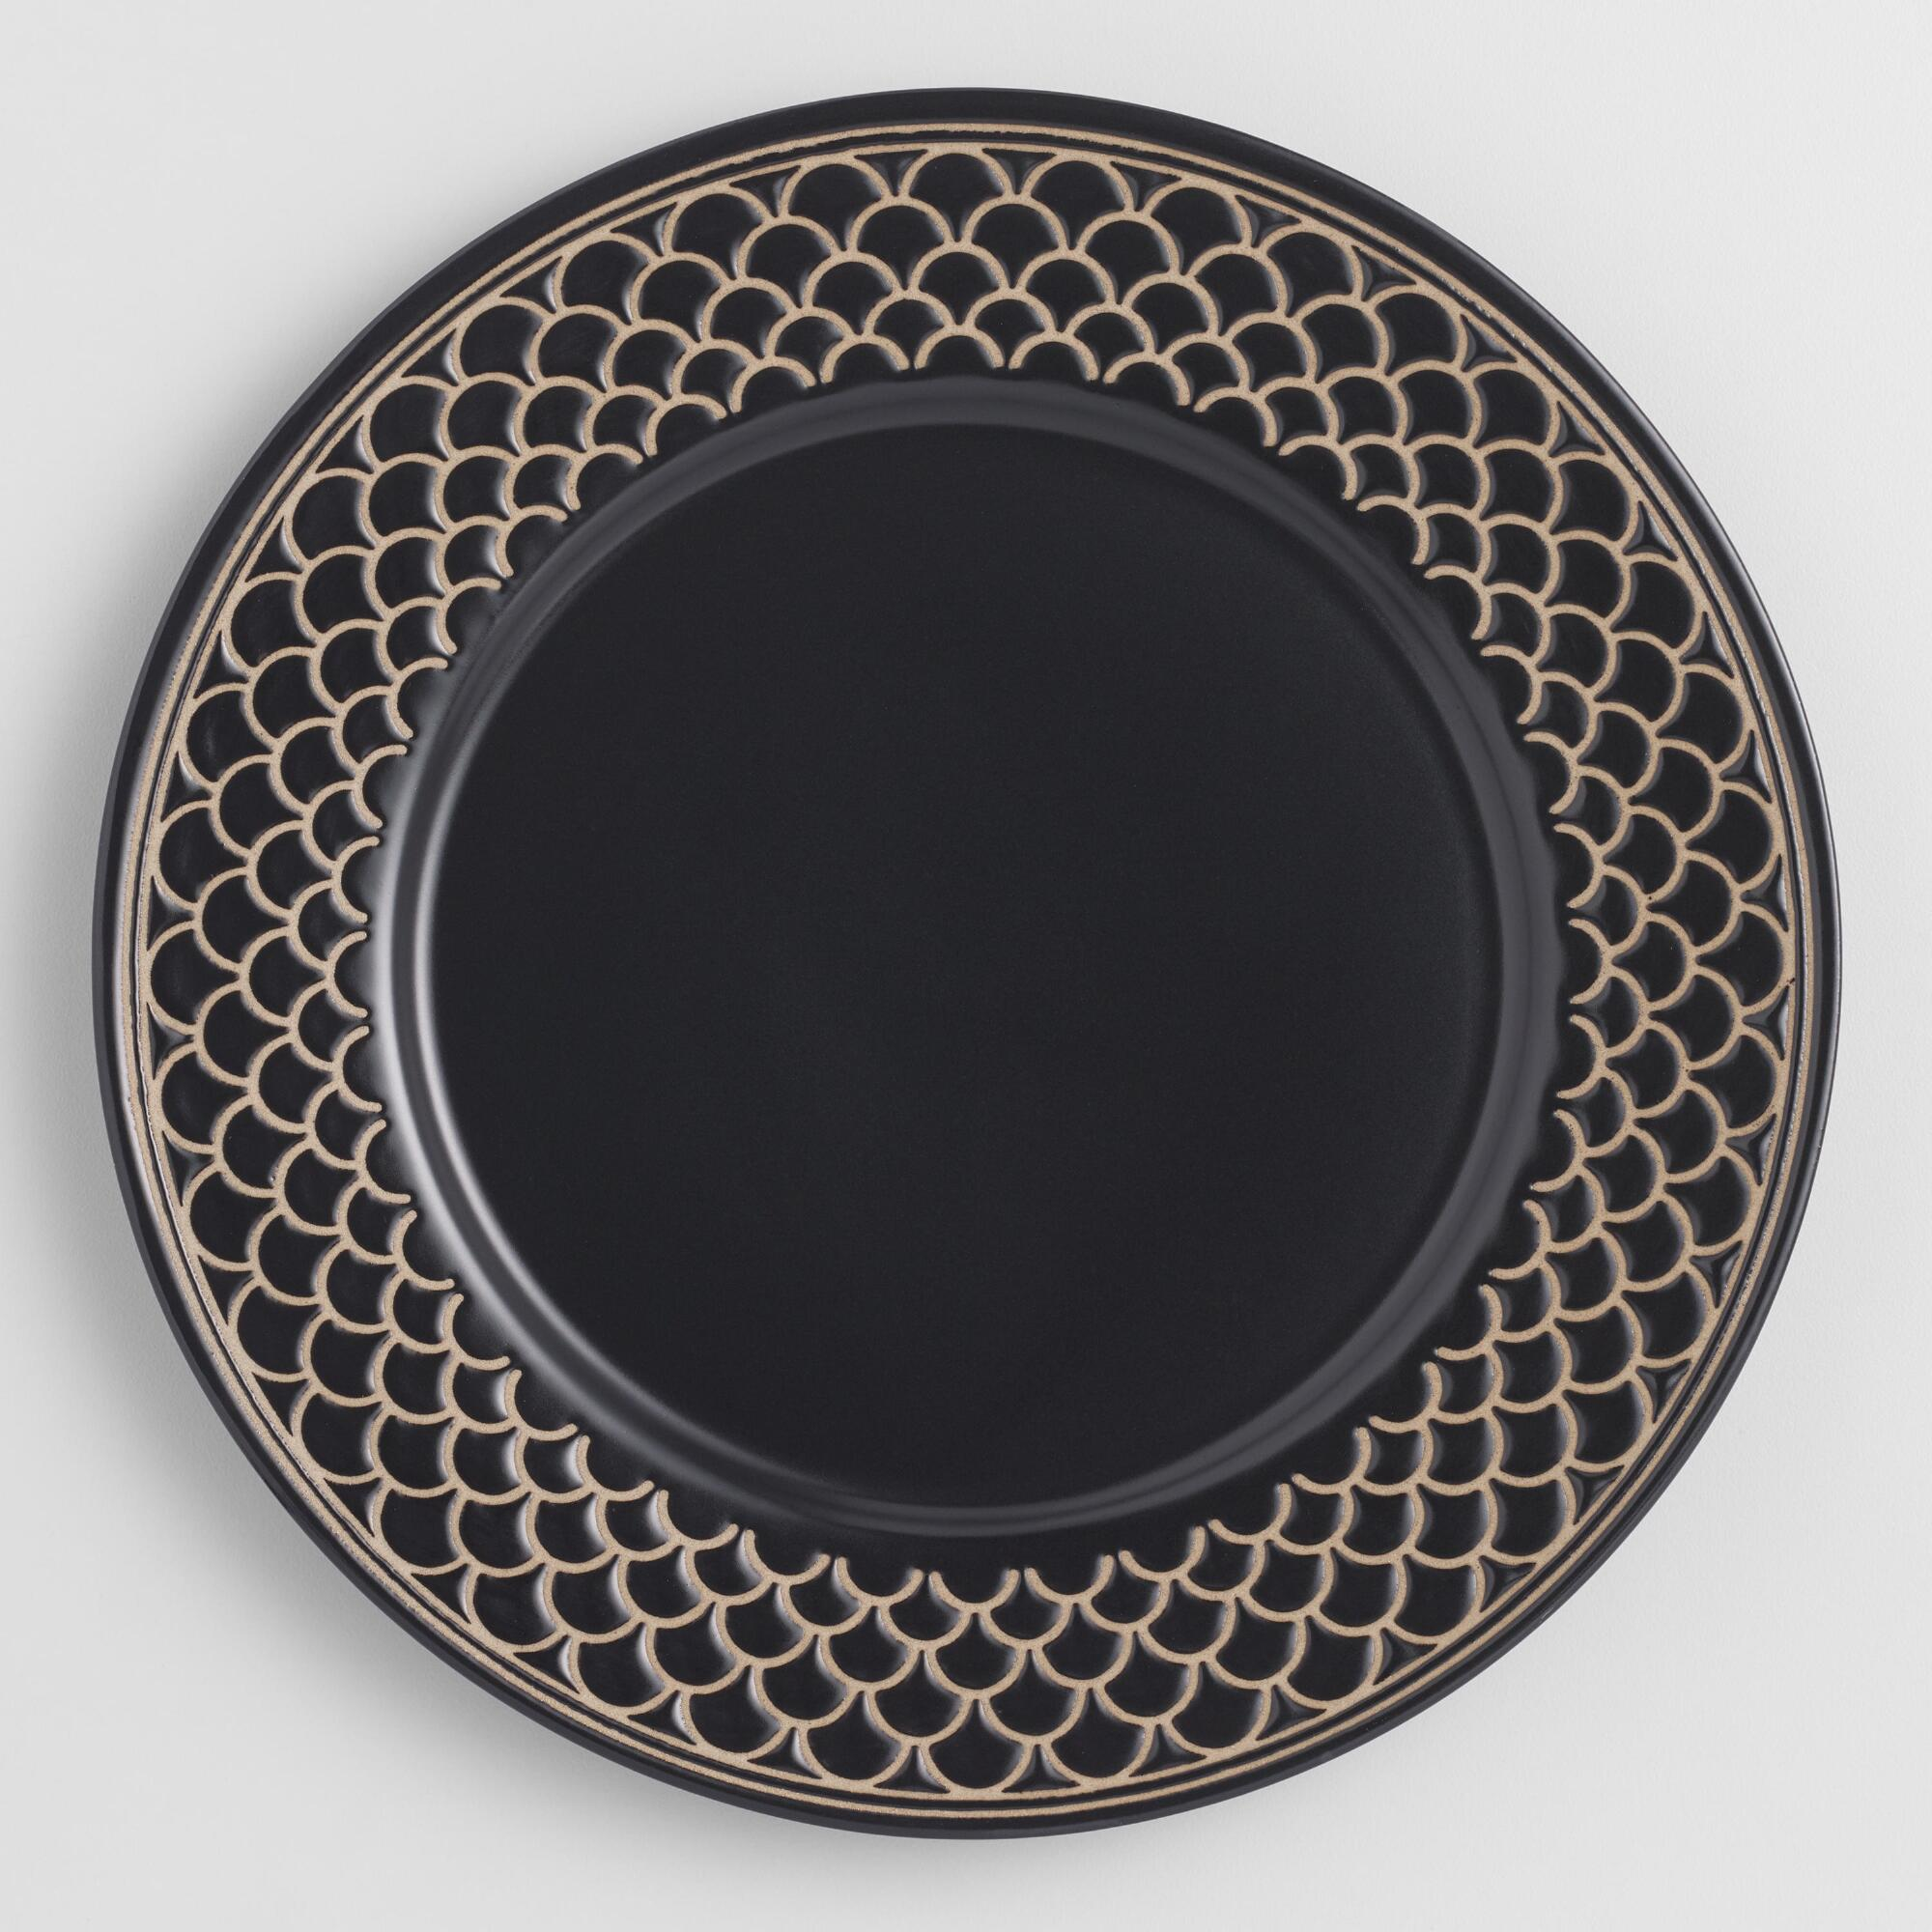 Black And White Textured Chloe Dinner Plates Set Of 4 by World Market